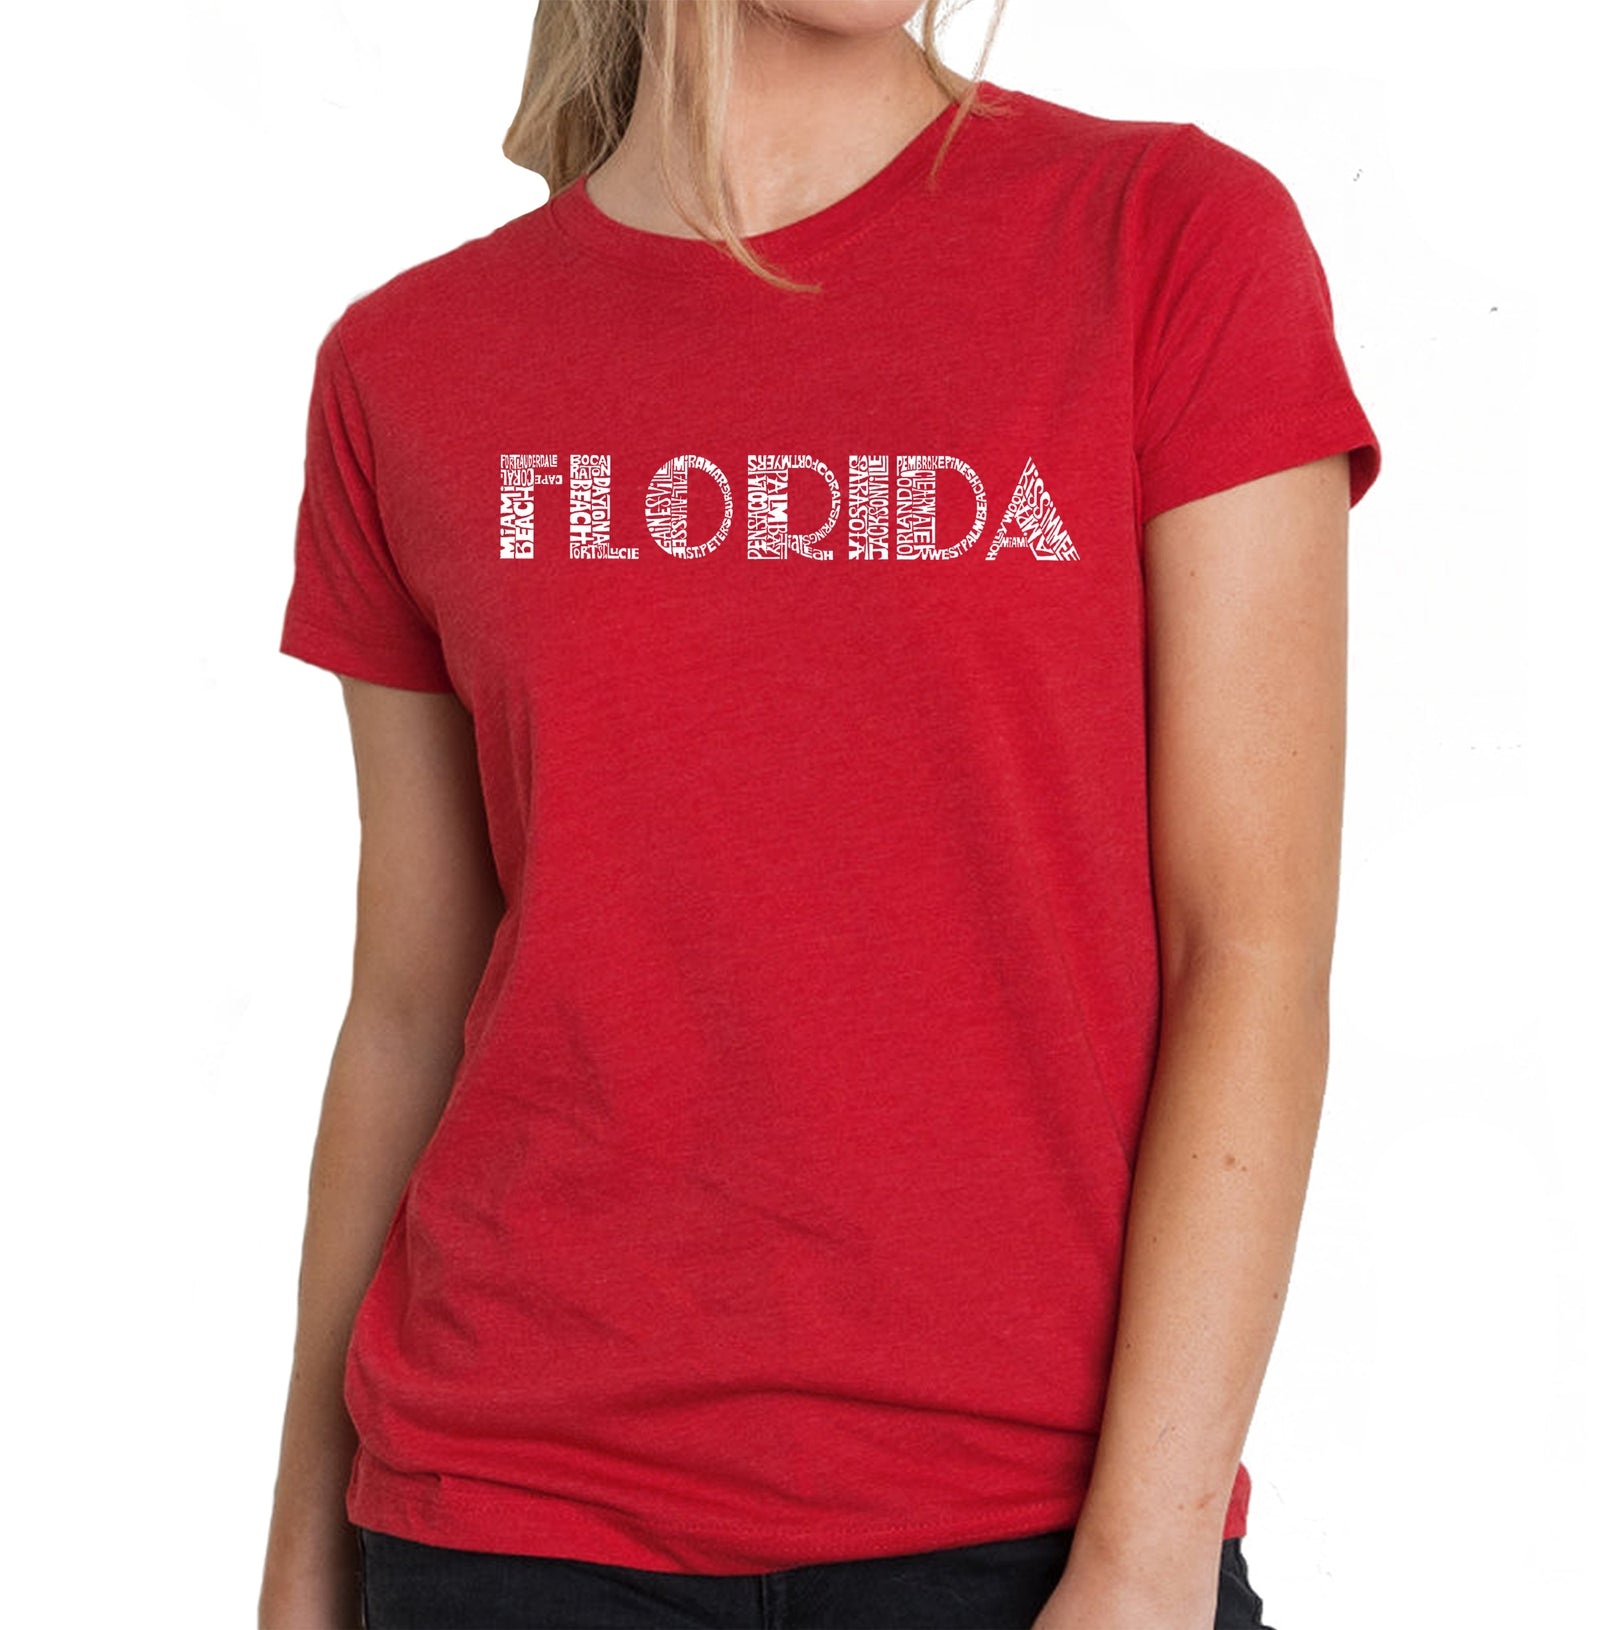 Women's Premium Blend Word Art T-shirt - POPULAR CITIES IN FLORIDA